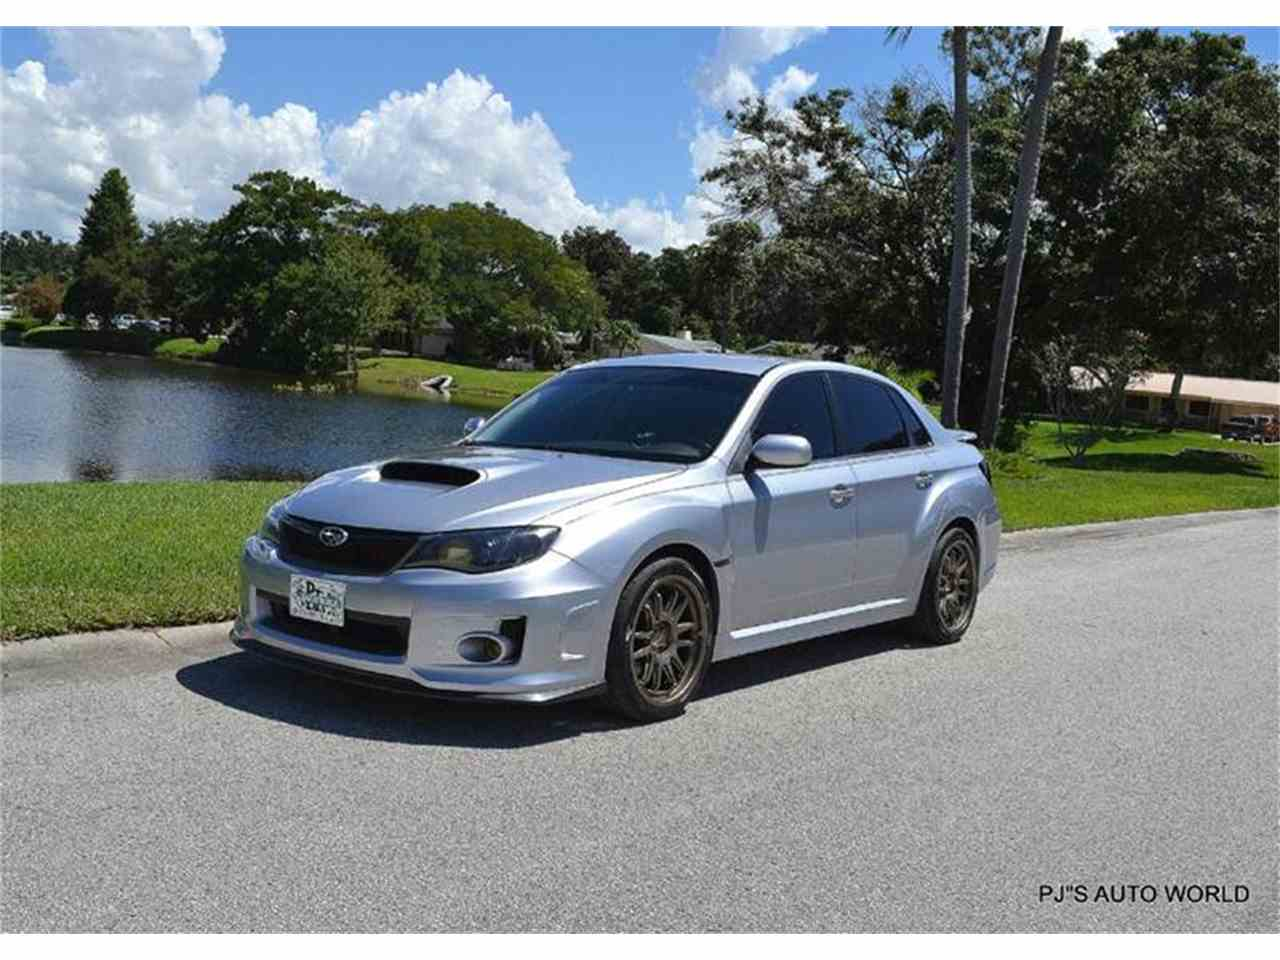 Large Picture of 2013 Impreza Offered by PJ's Auto World - J6WM